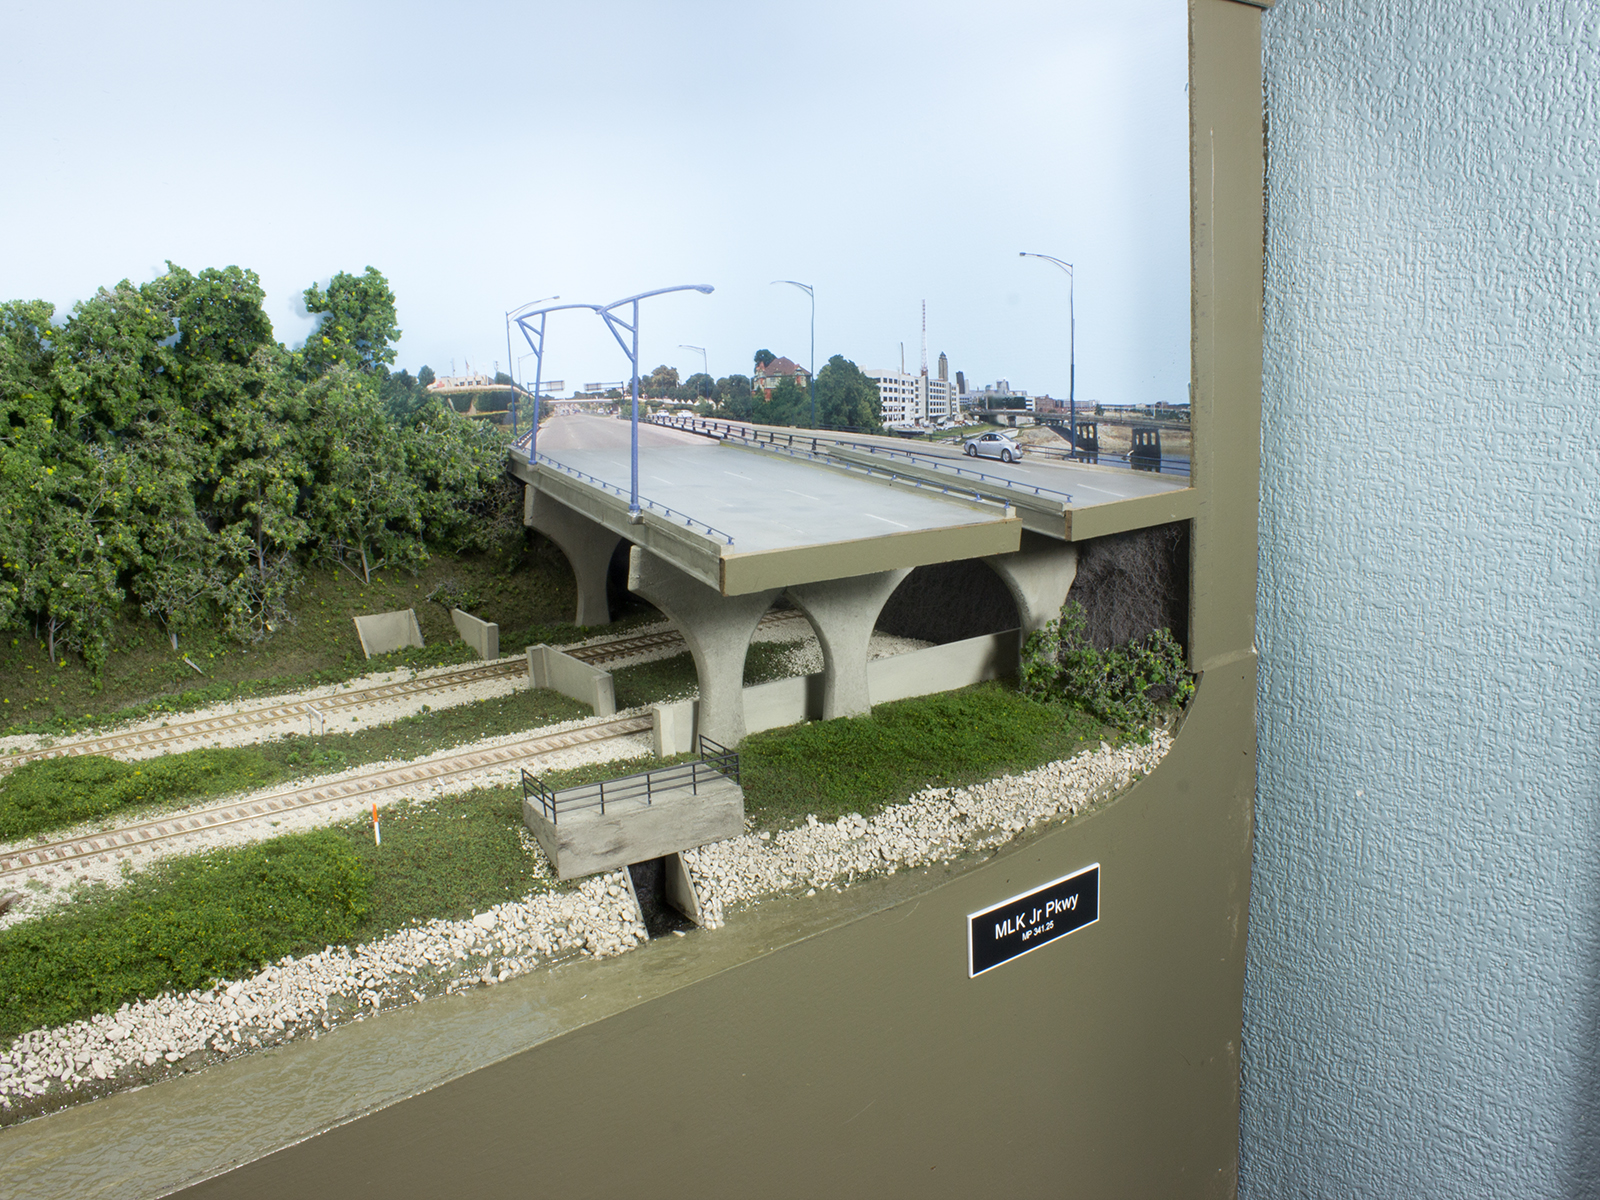 The MLK Jr. Parkway passes over the middle of the prototype yard, but serves as the eastern boundary of the model. The photo backdrop was created from street view shots in Google Earth.